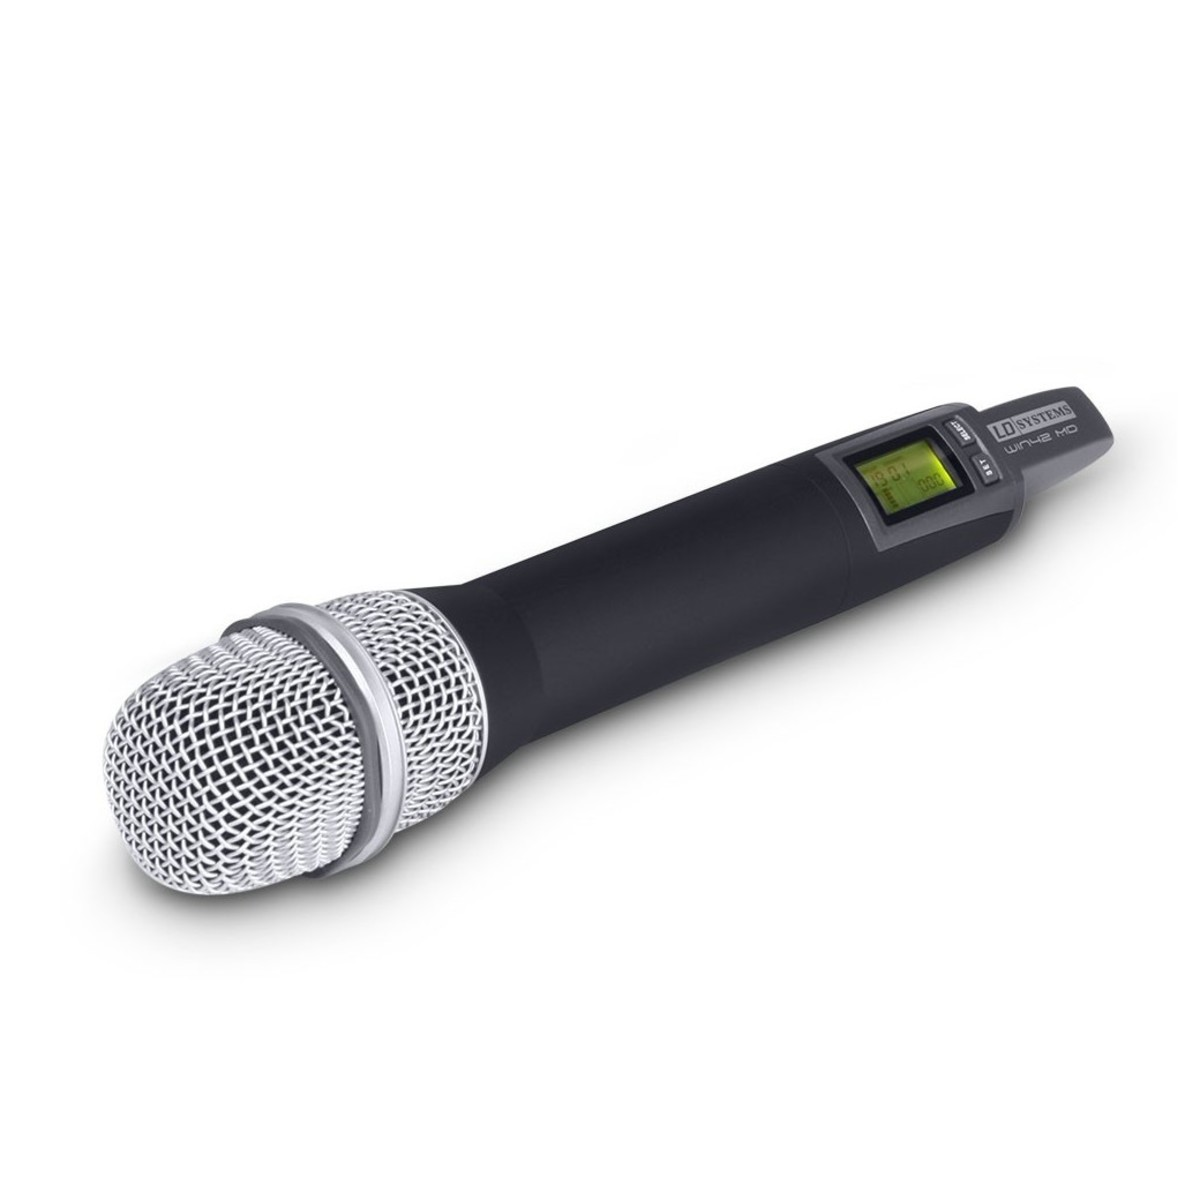 b4b9b3b5cca LD Systems WIN 42 Wireless Dynamic Microphone